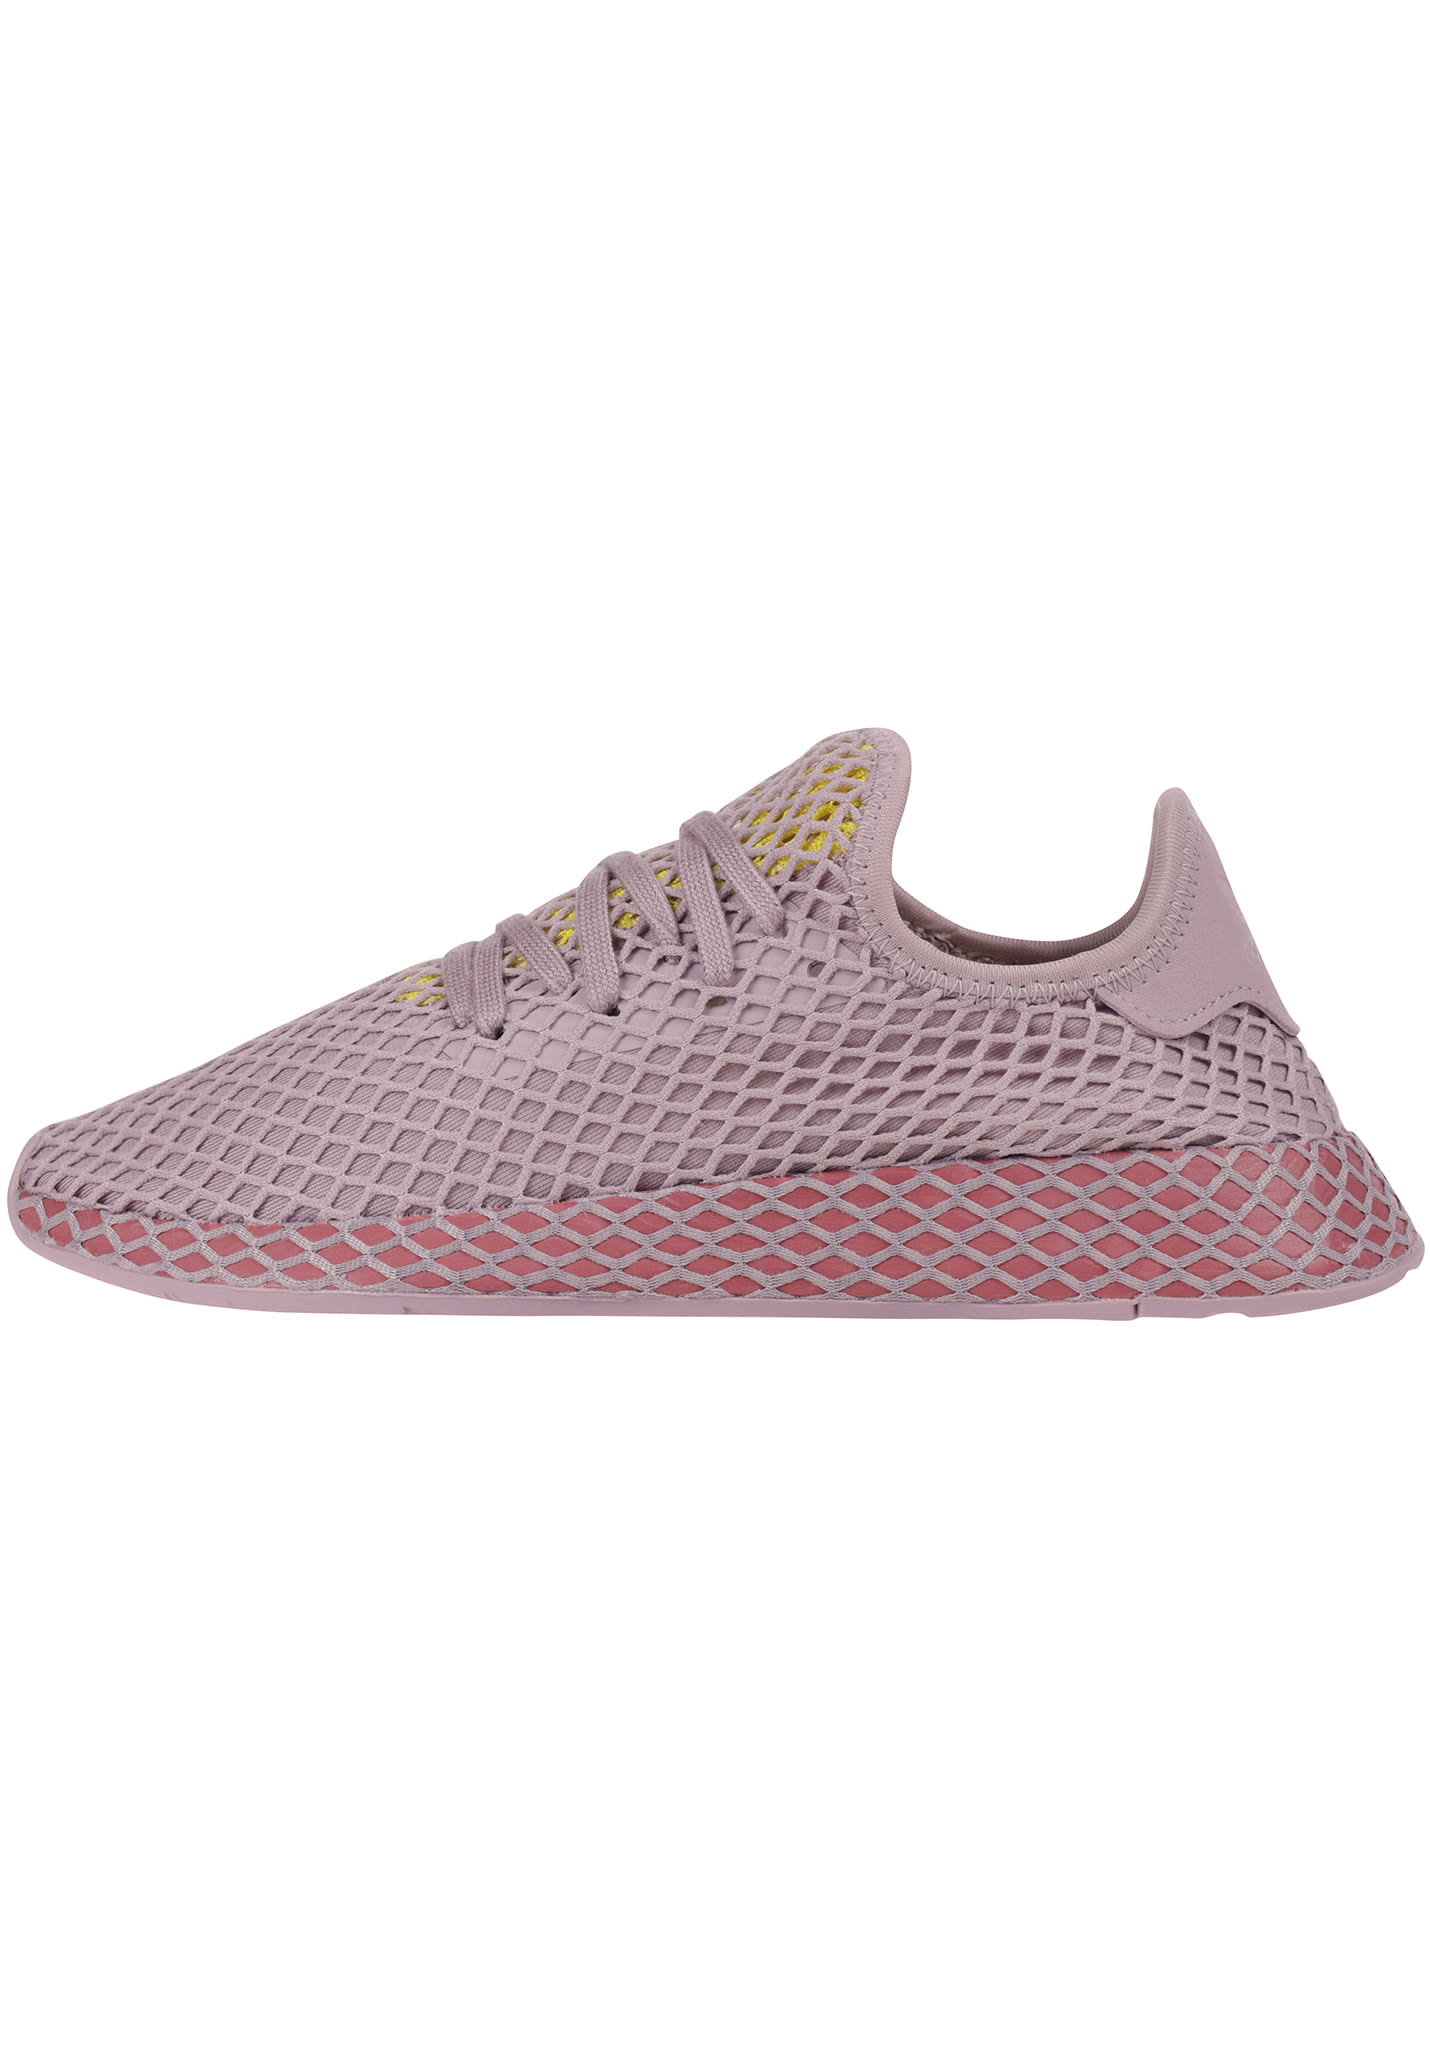 2de55928288ea ADIDAS ORIGINALS Deerupt Runner - Sneakers for Women - Purple - Planet  Sports